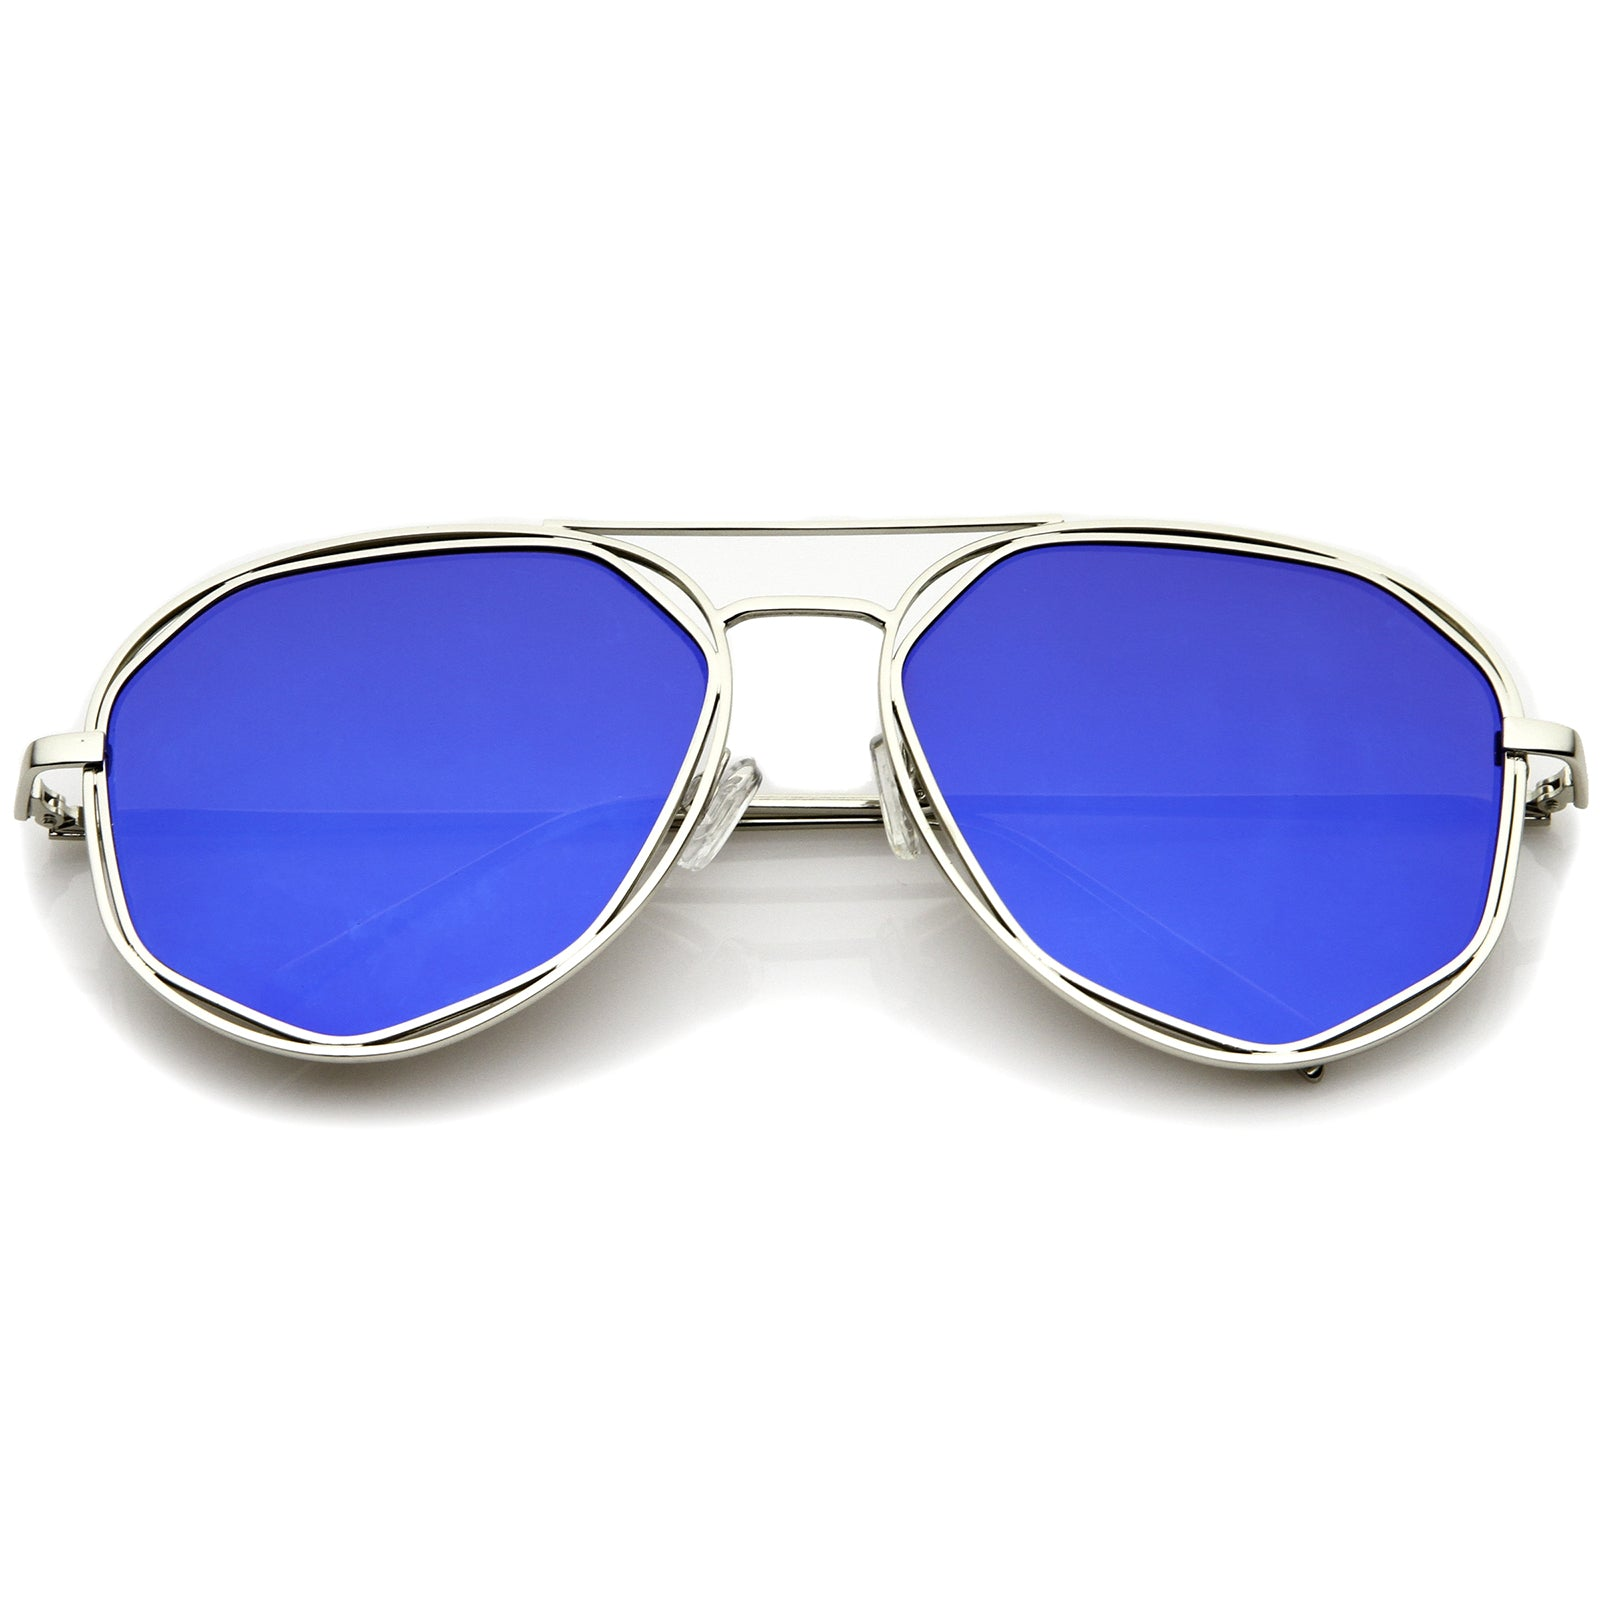 Geometric Hexagonal Metal Frame Colored Mirror Flat Lens Aviator Sunglasses 60mm - sunglass.la - 7